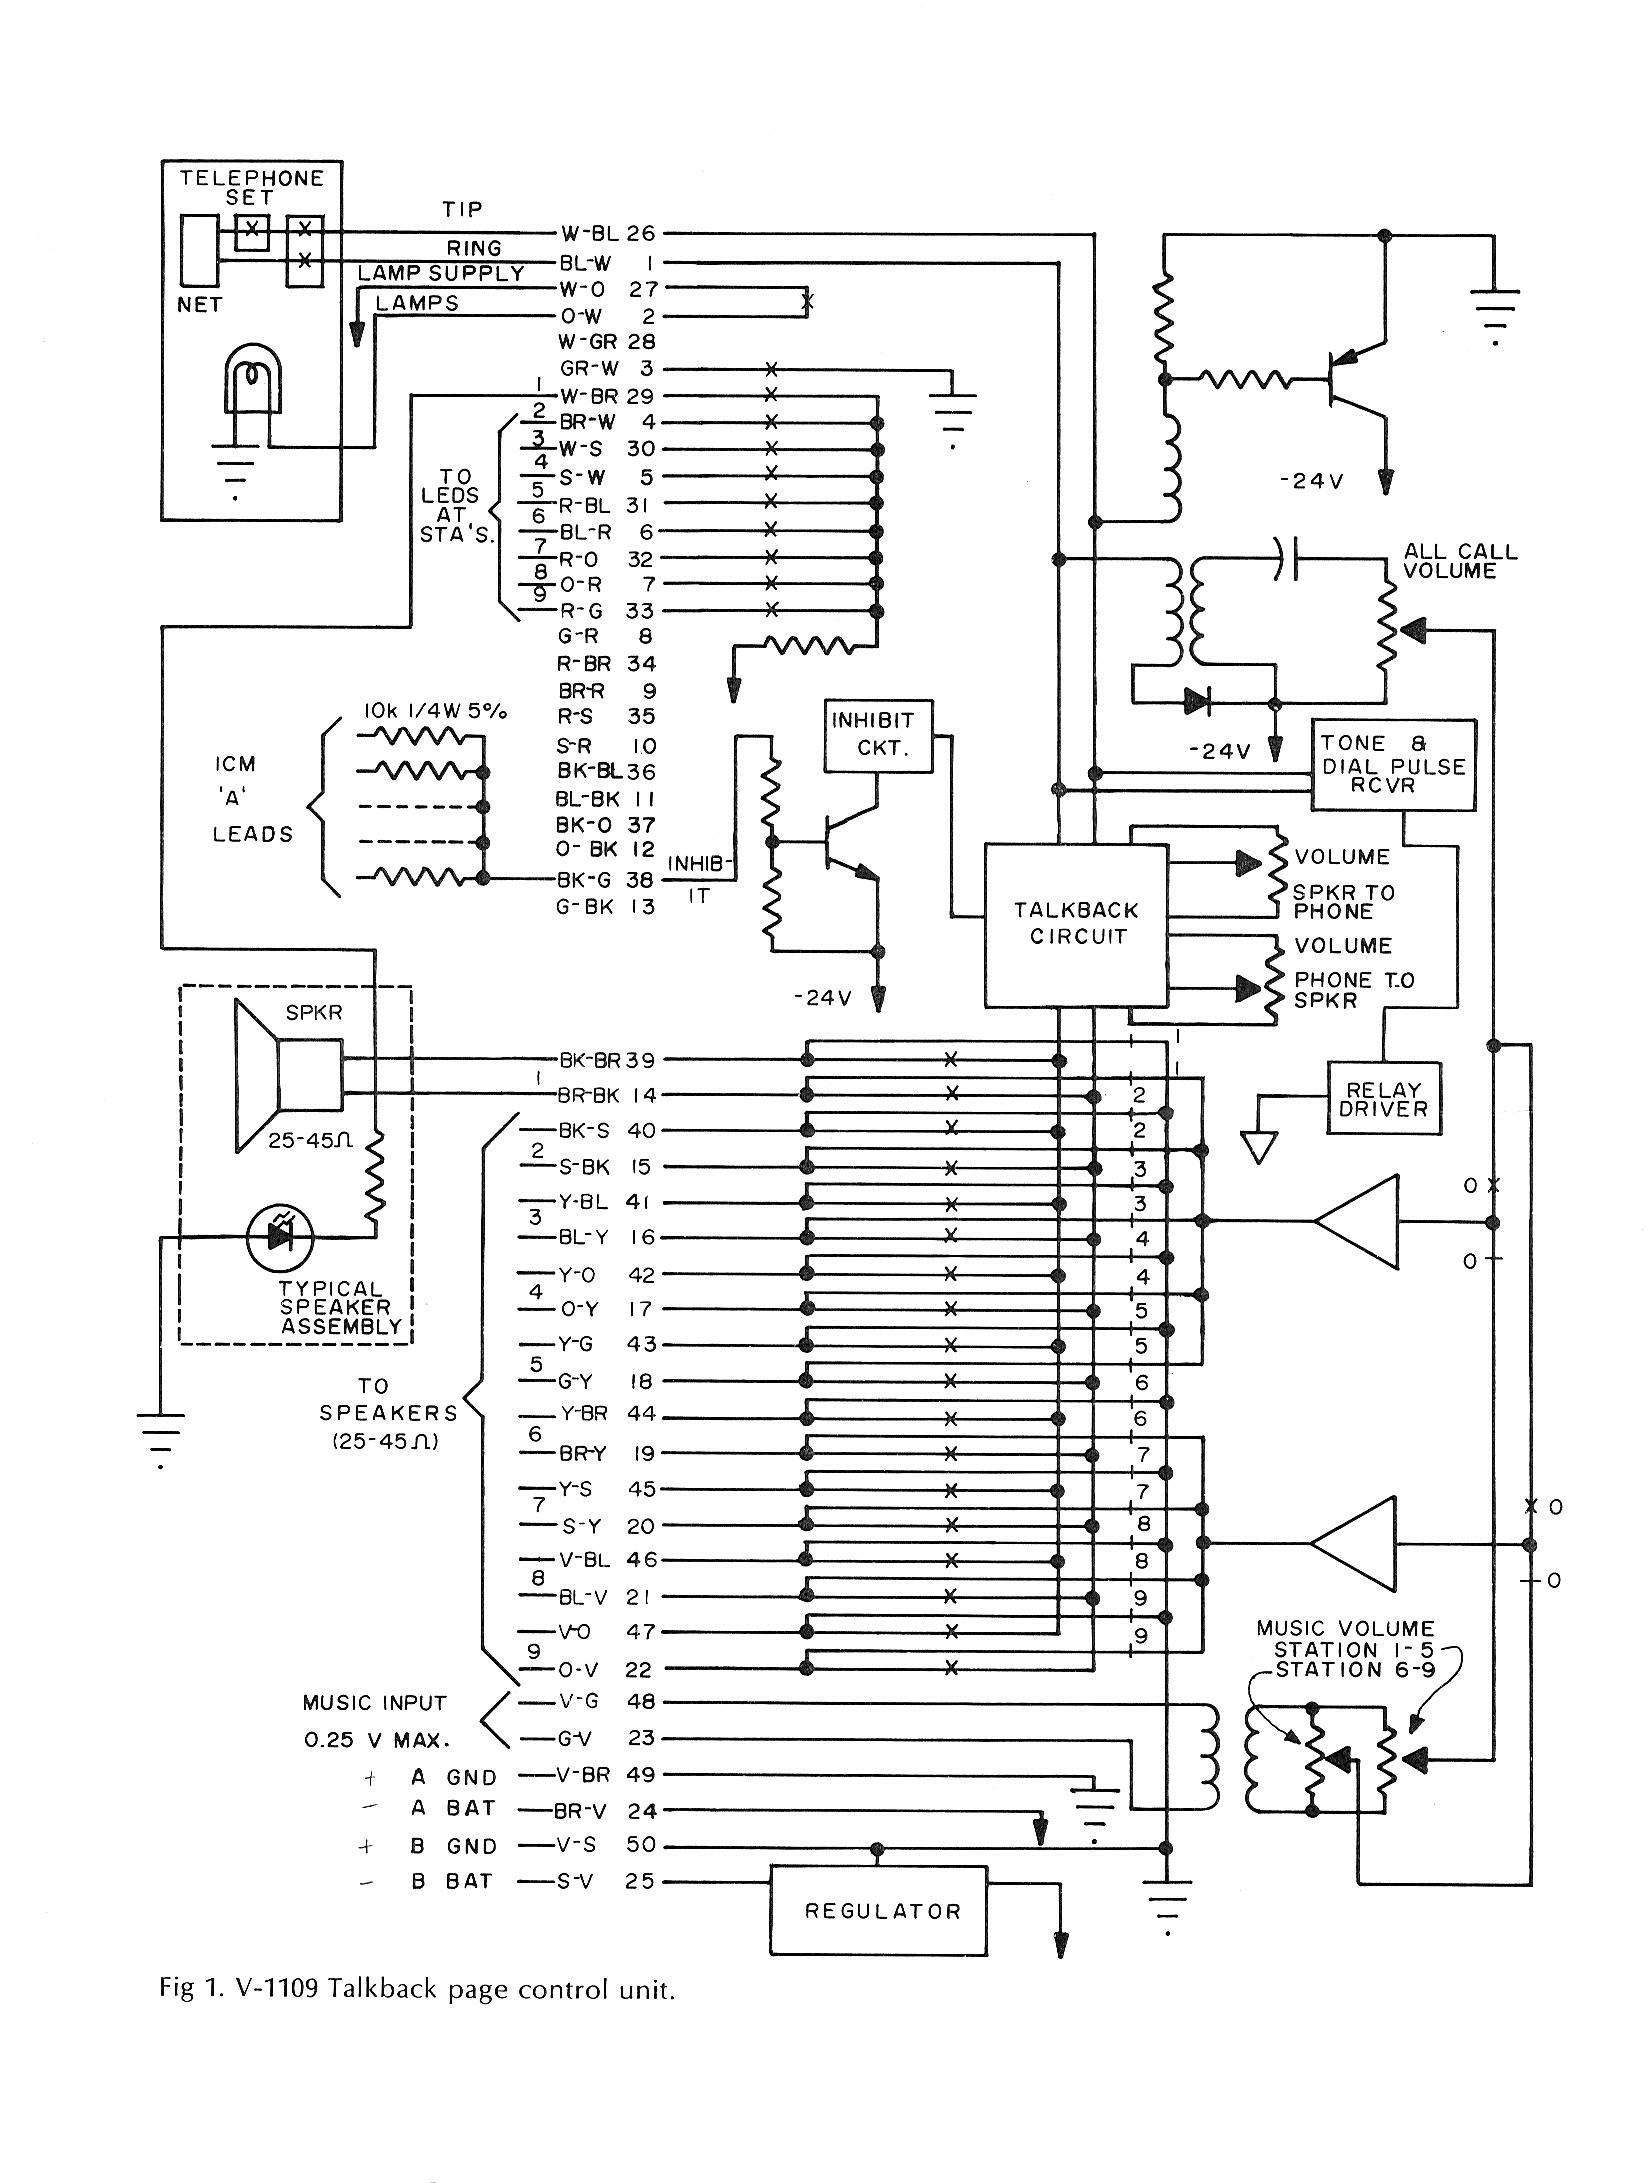 valcom1109 telephone technical references kellogg telephone wiring diagram at crackthecode.co